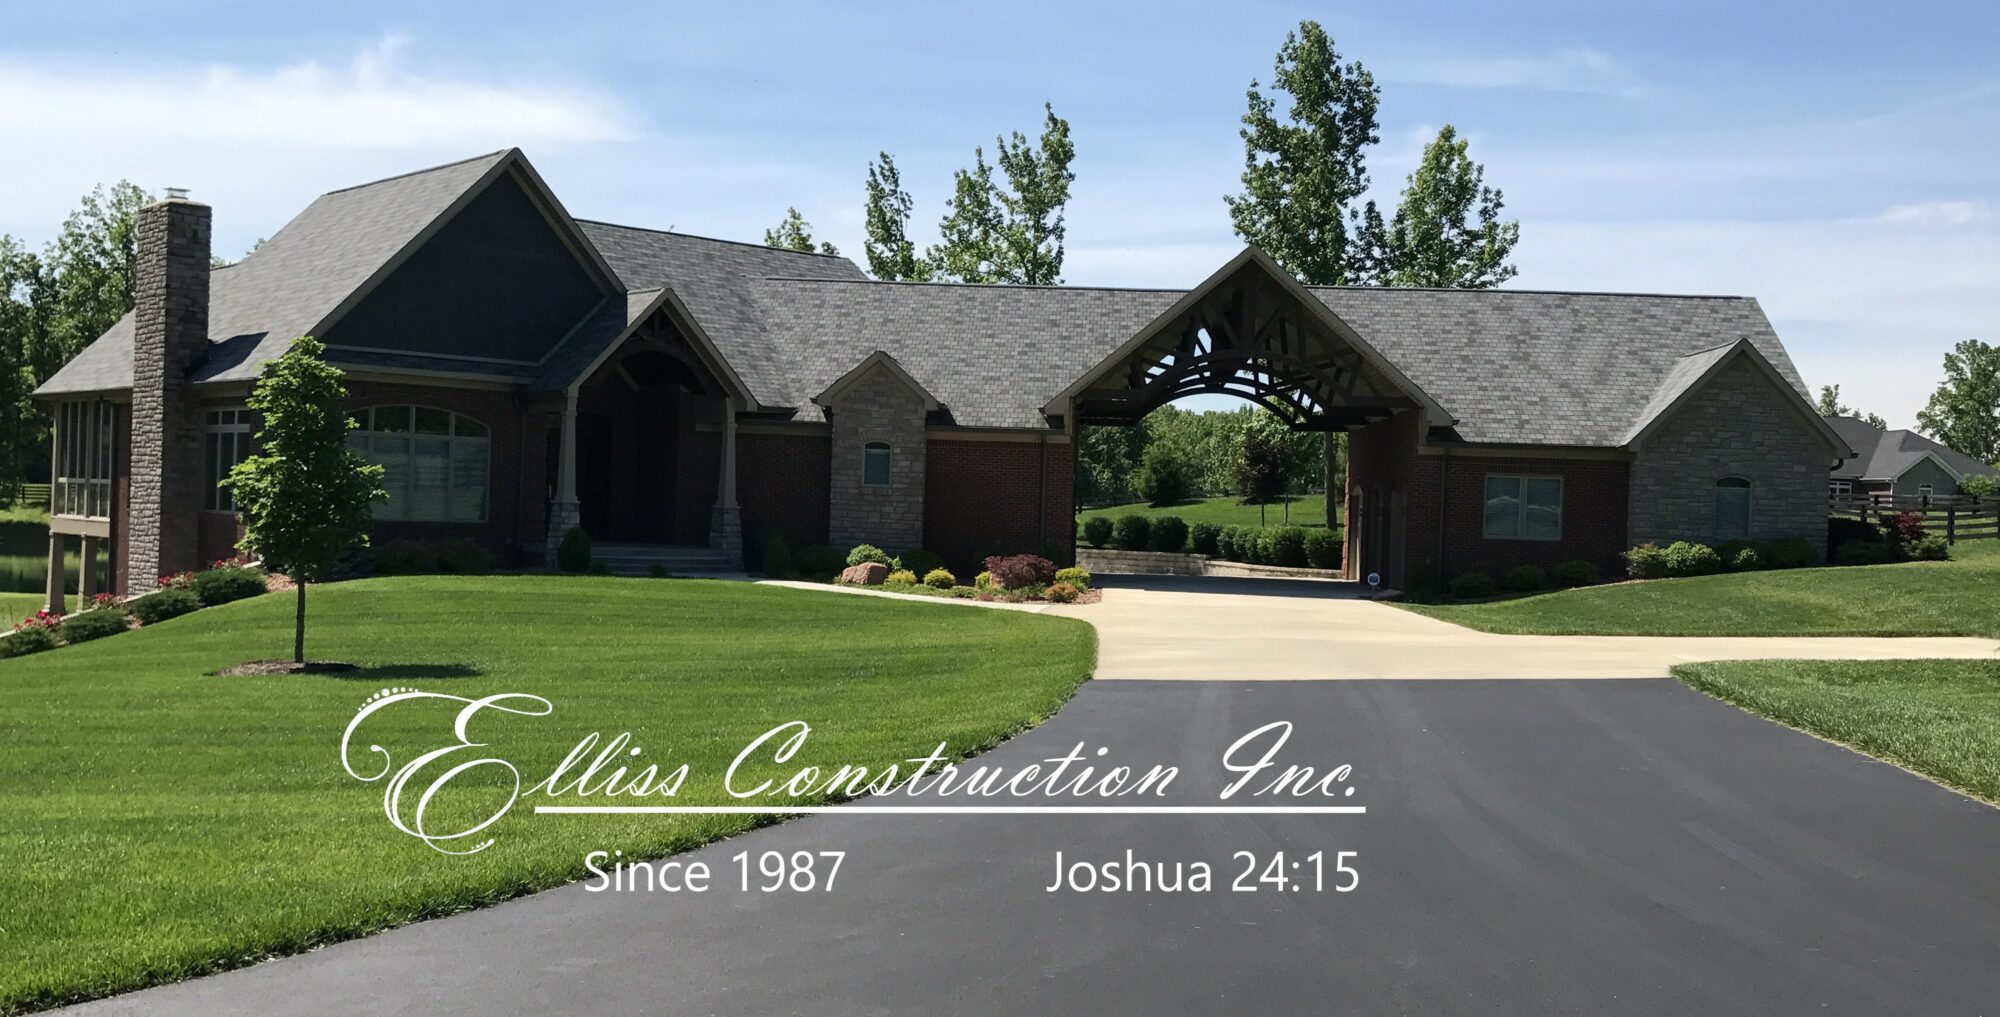 Elliss Construction, Inc   /   Joshua 24:15